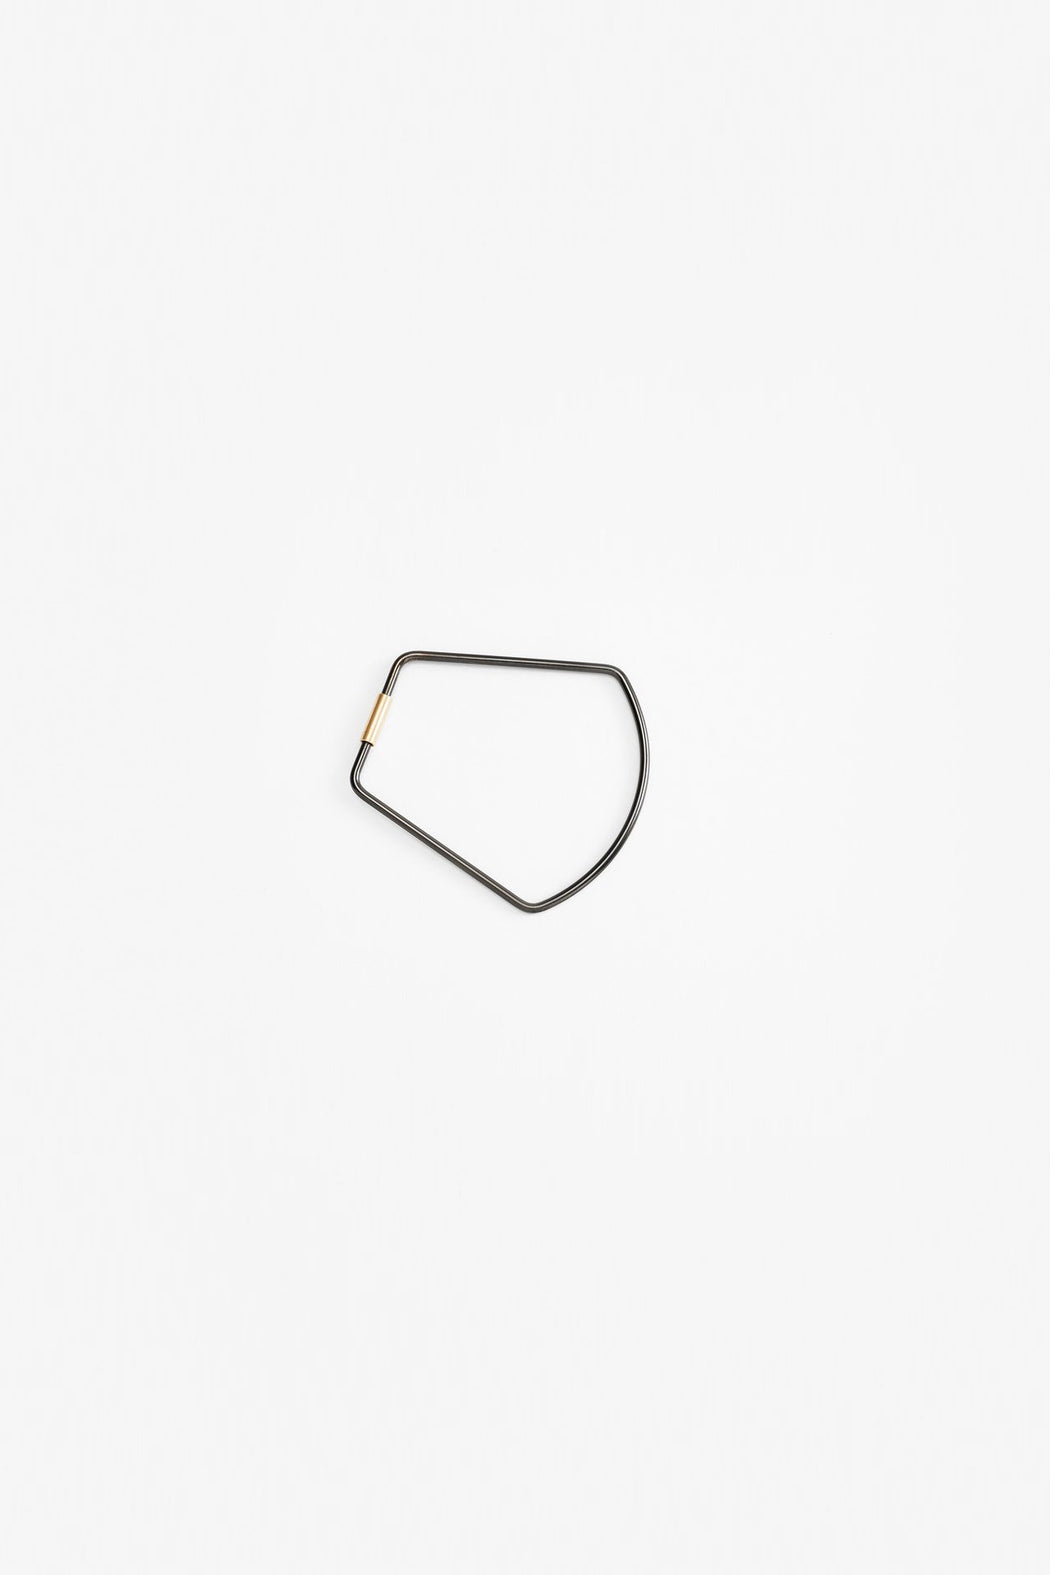 Contour Key Ring - Black Bell